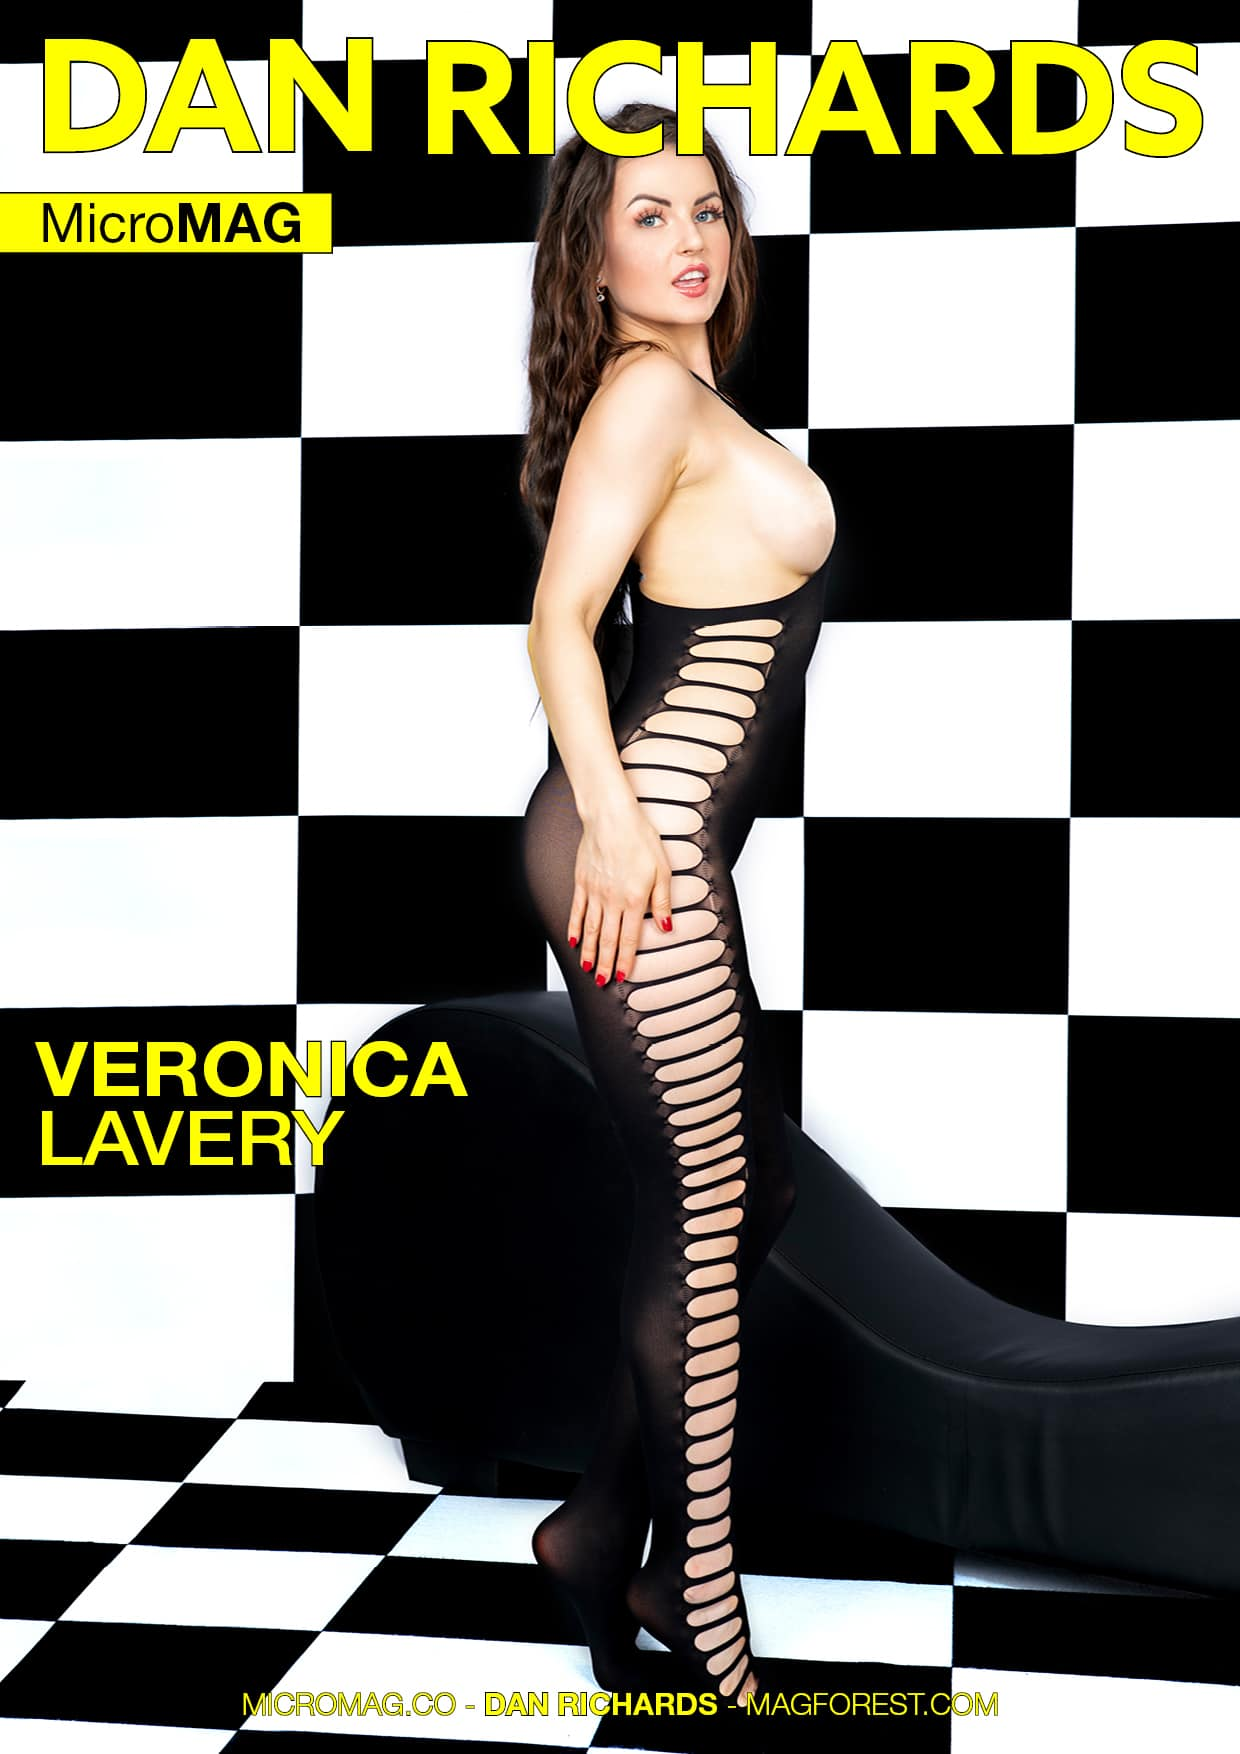 Dan Richards MicroMAG - Veronica LaVery - Issue 2 1